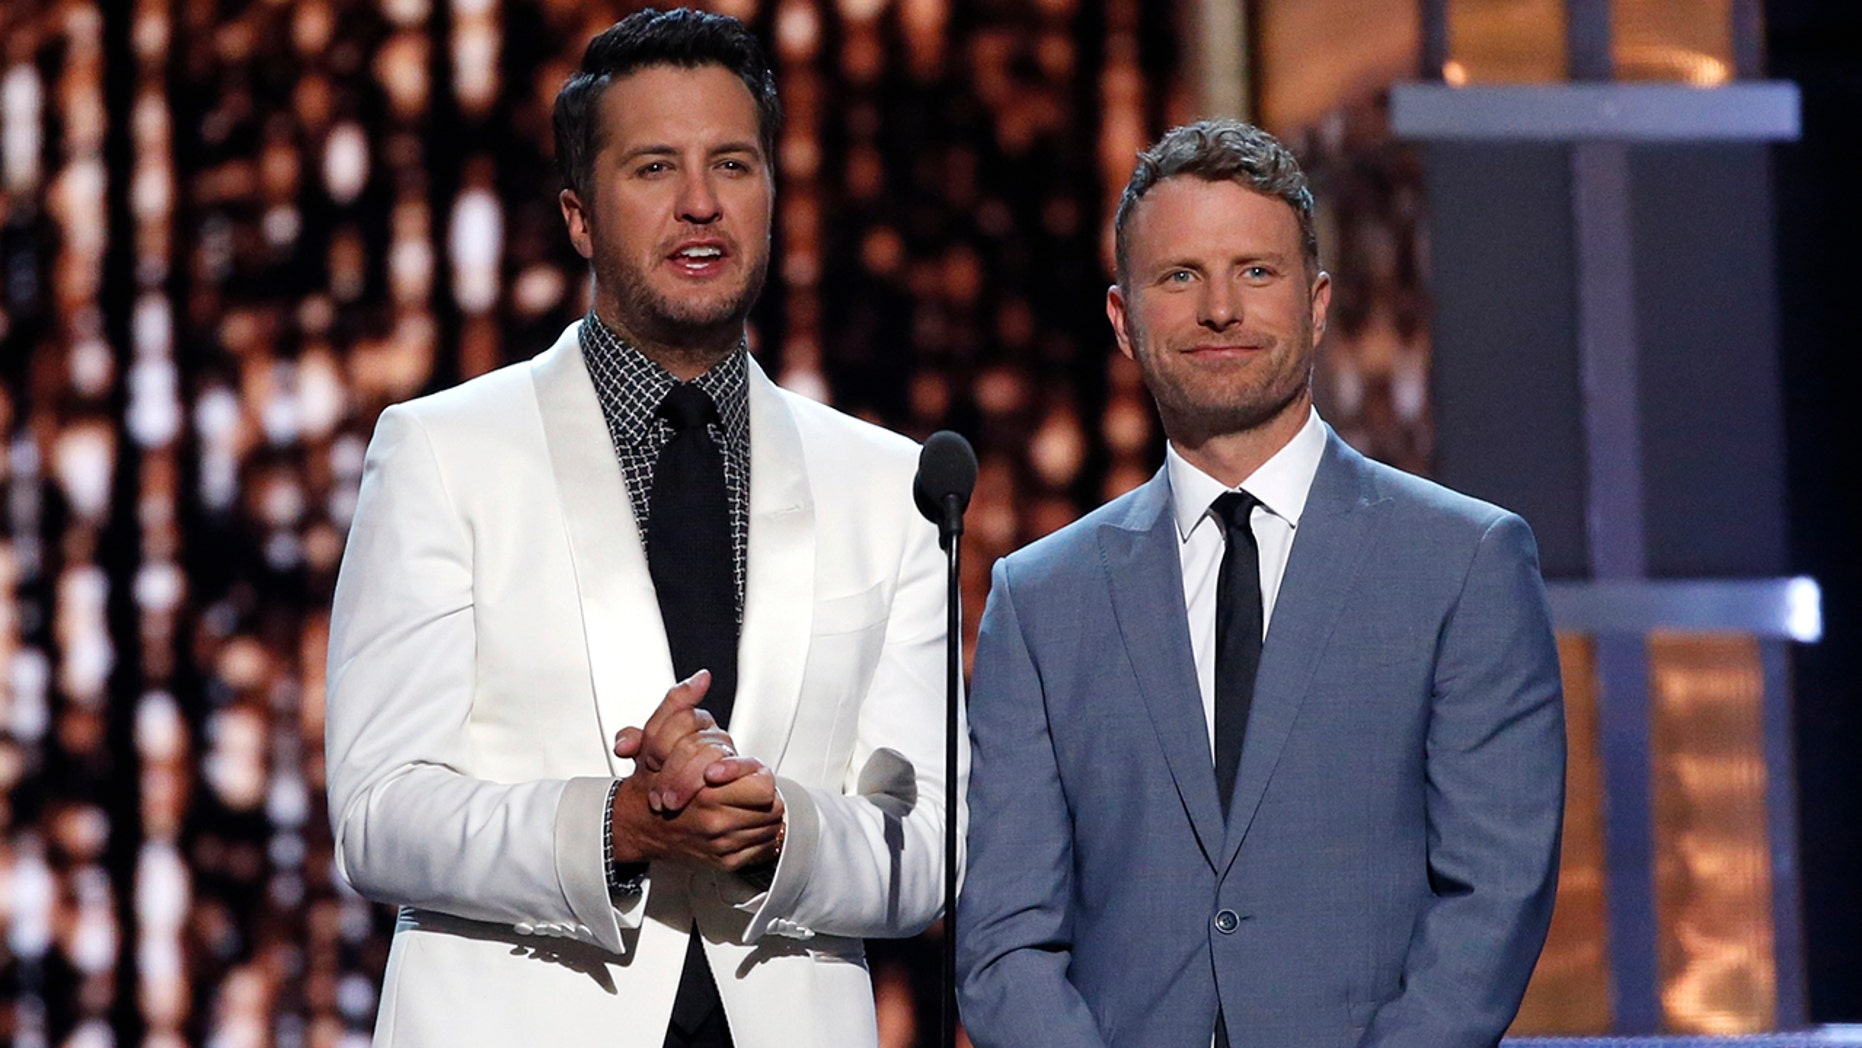 Luke Bryan (L) and Dierks Bentley host the 52nd Academy of Country Music Awards in Las Vegas, Nevada on April 2, 2017.